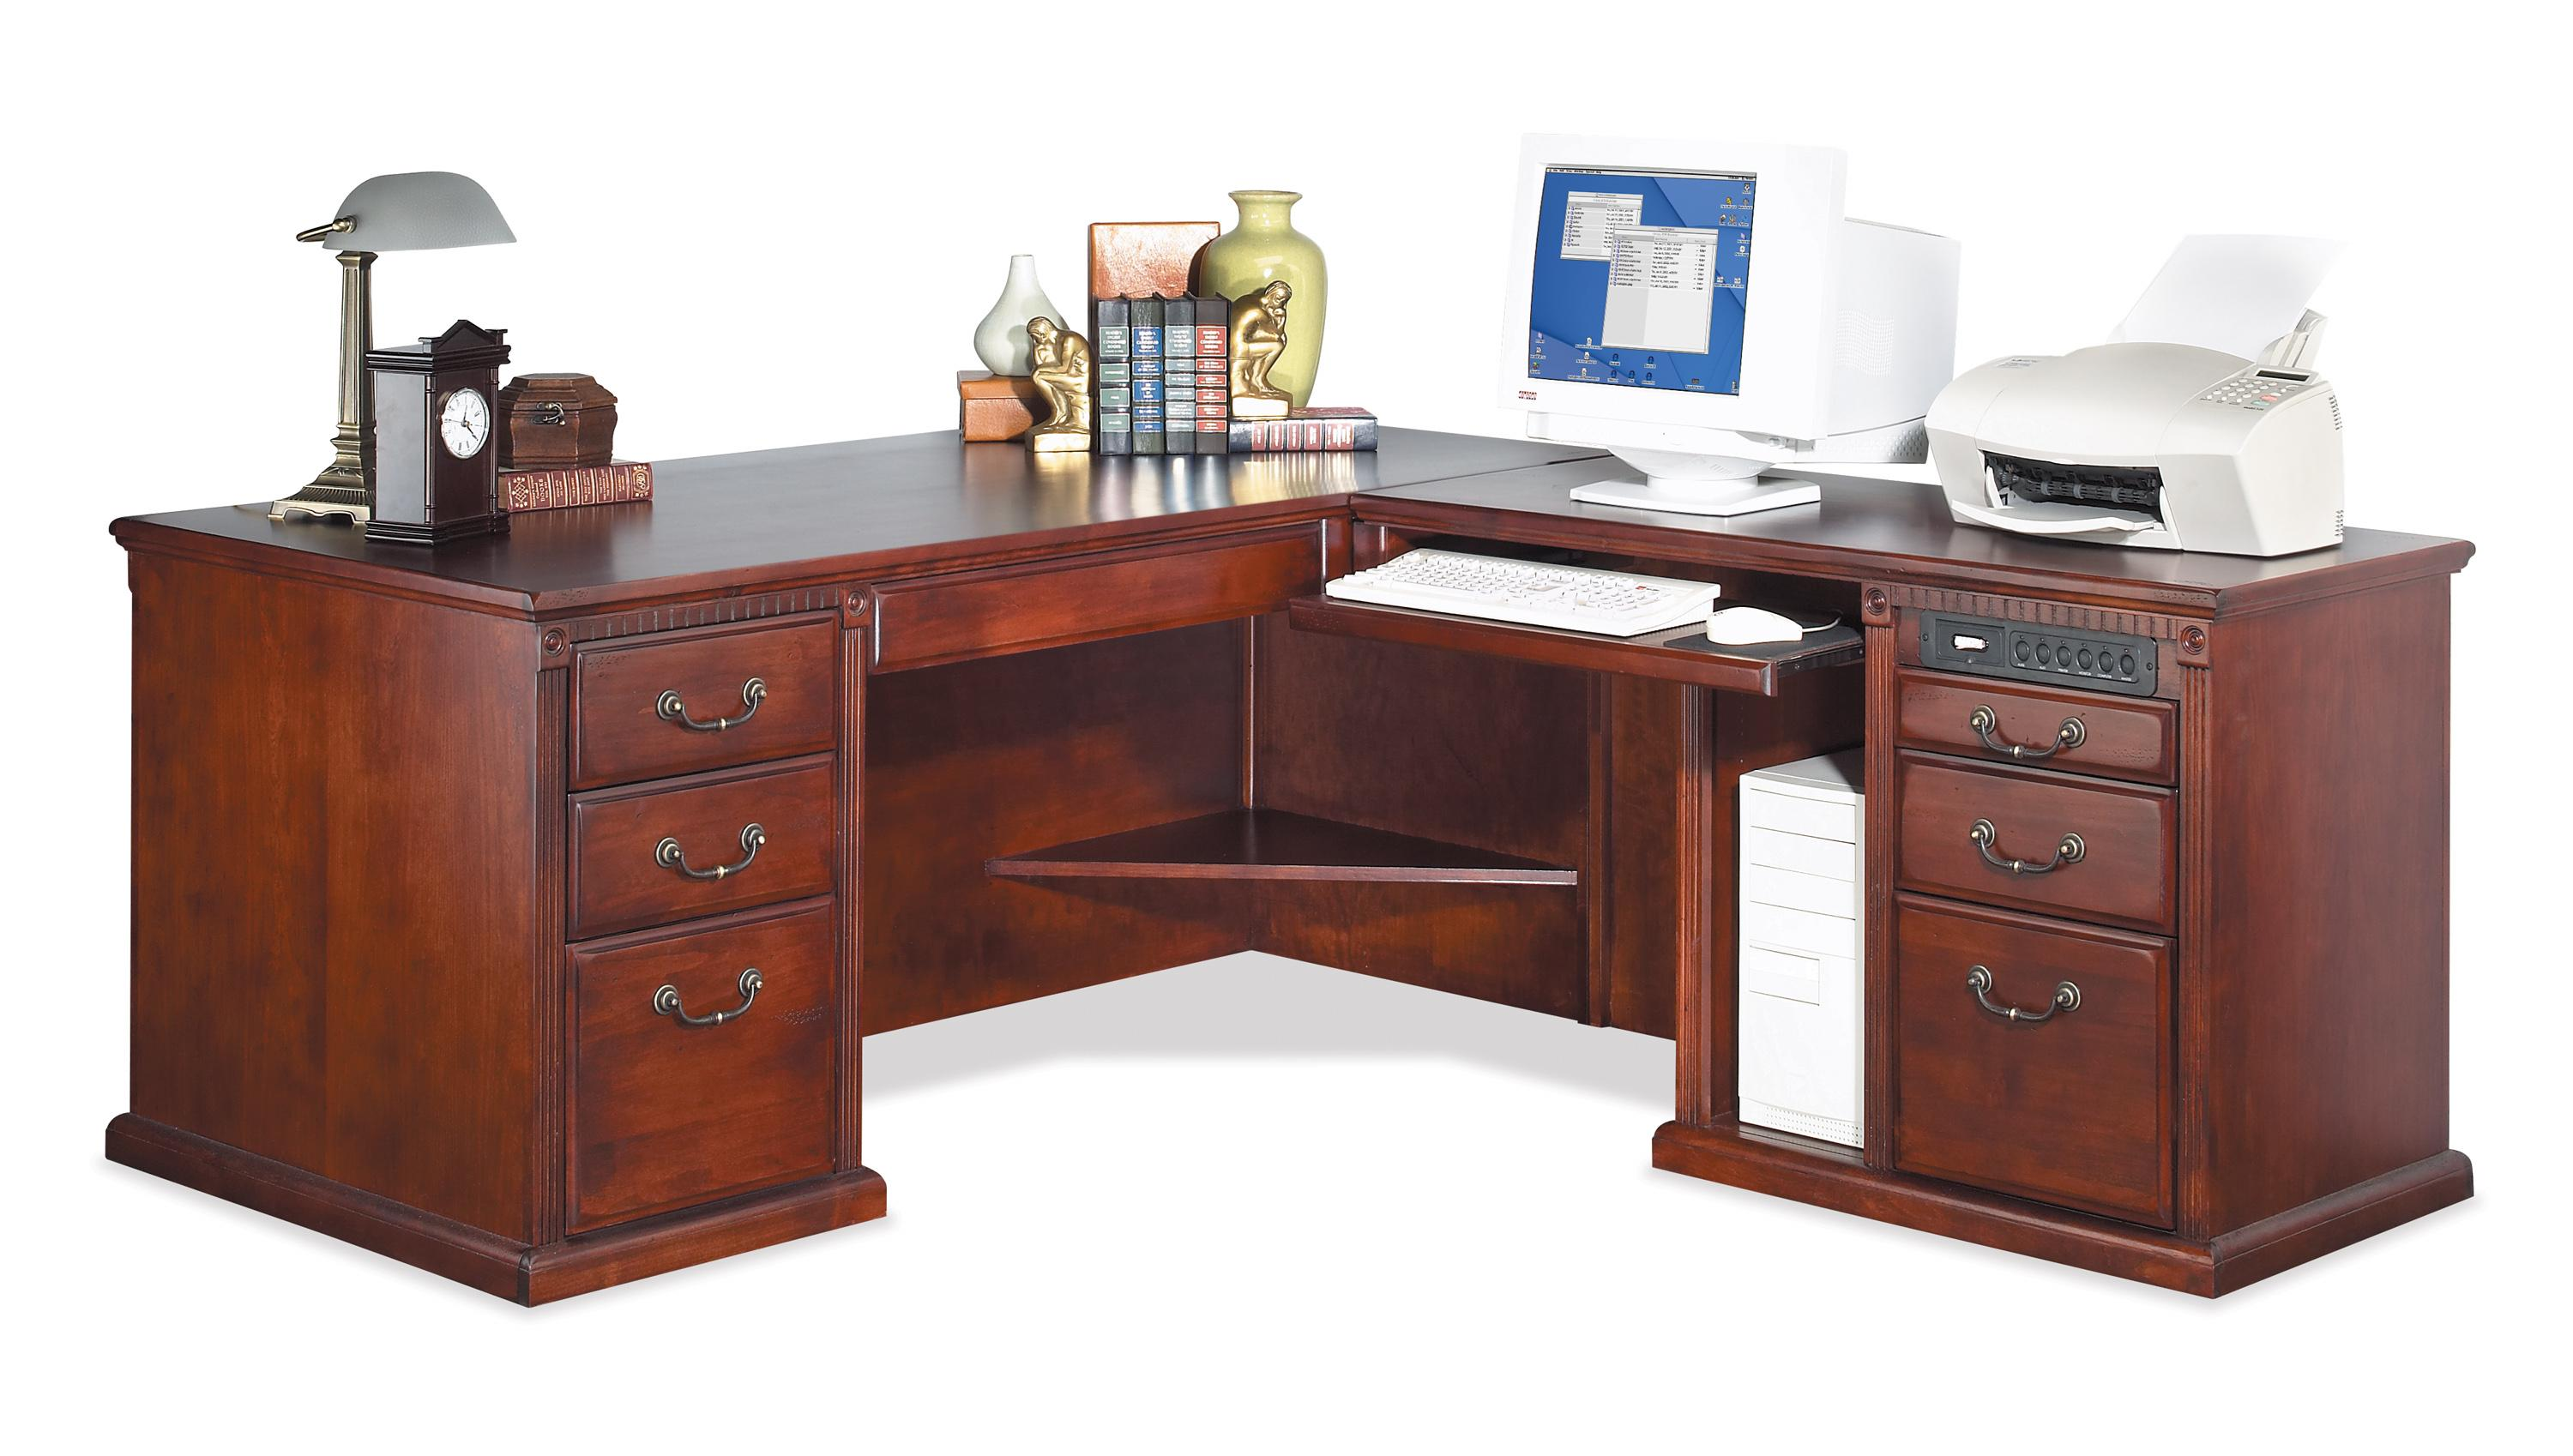 kathy ireland Home by Martin Huntington Club Corner L-Shaped Executive Desk - Item Number: HCR684R+684R-R